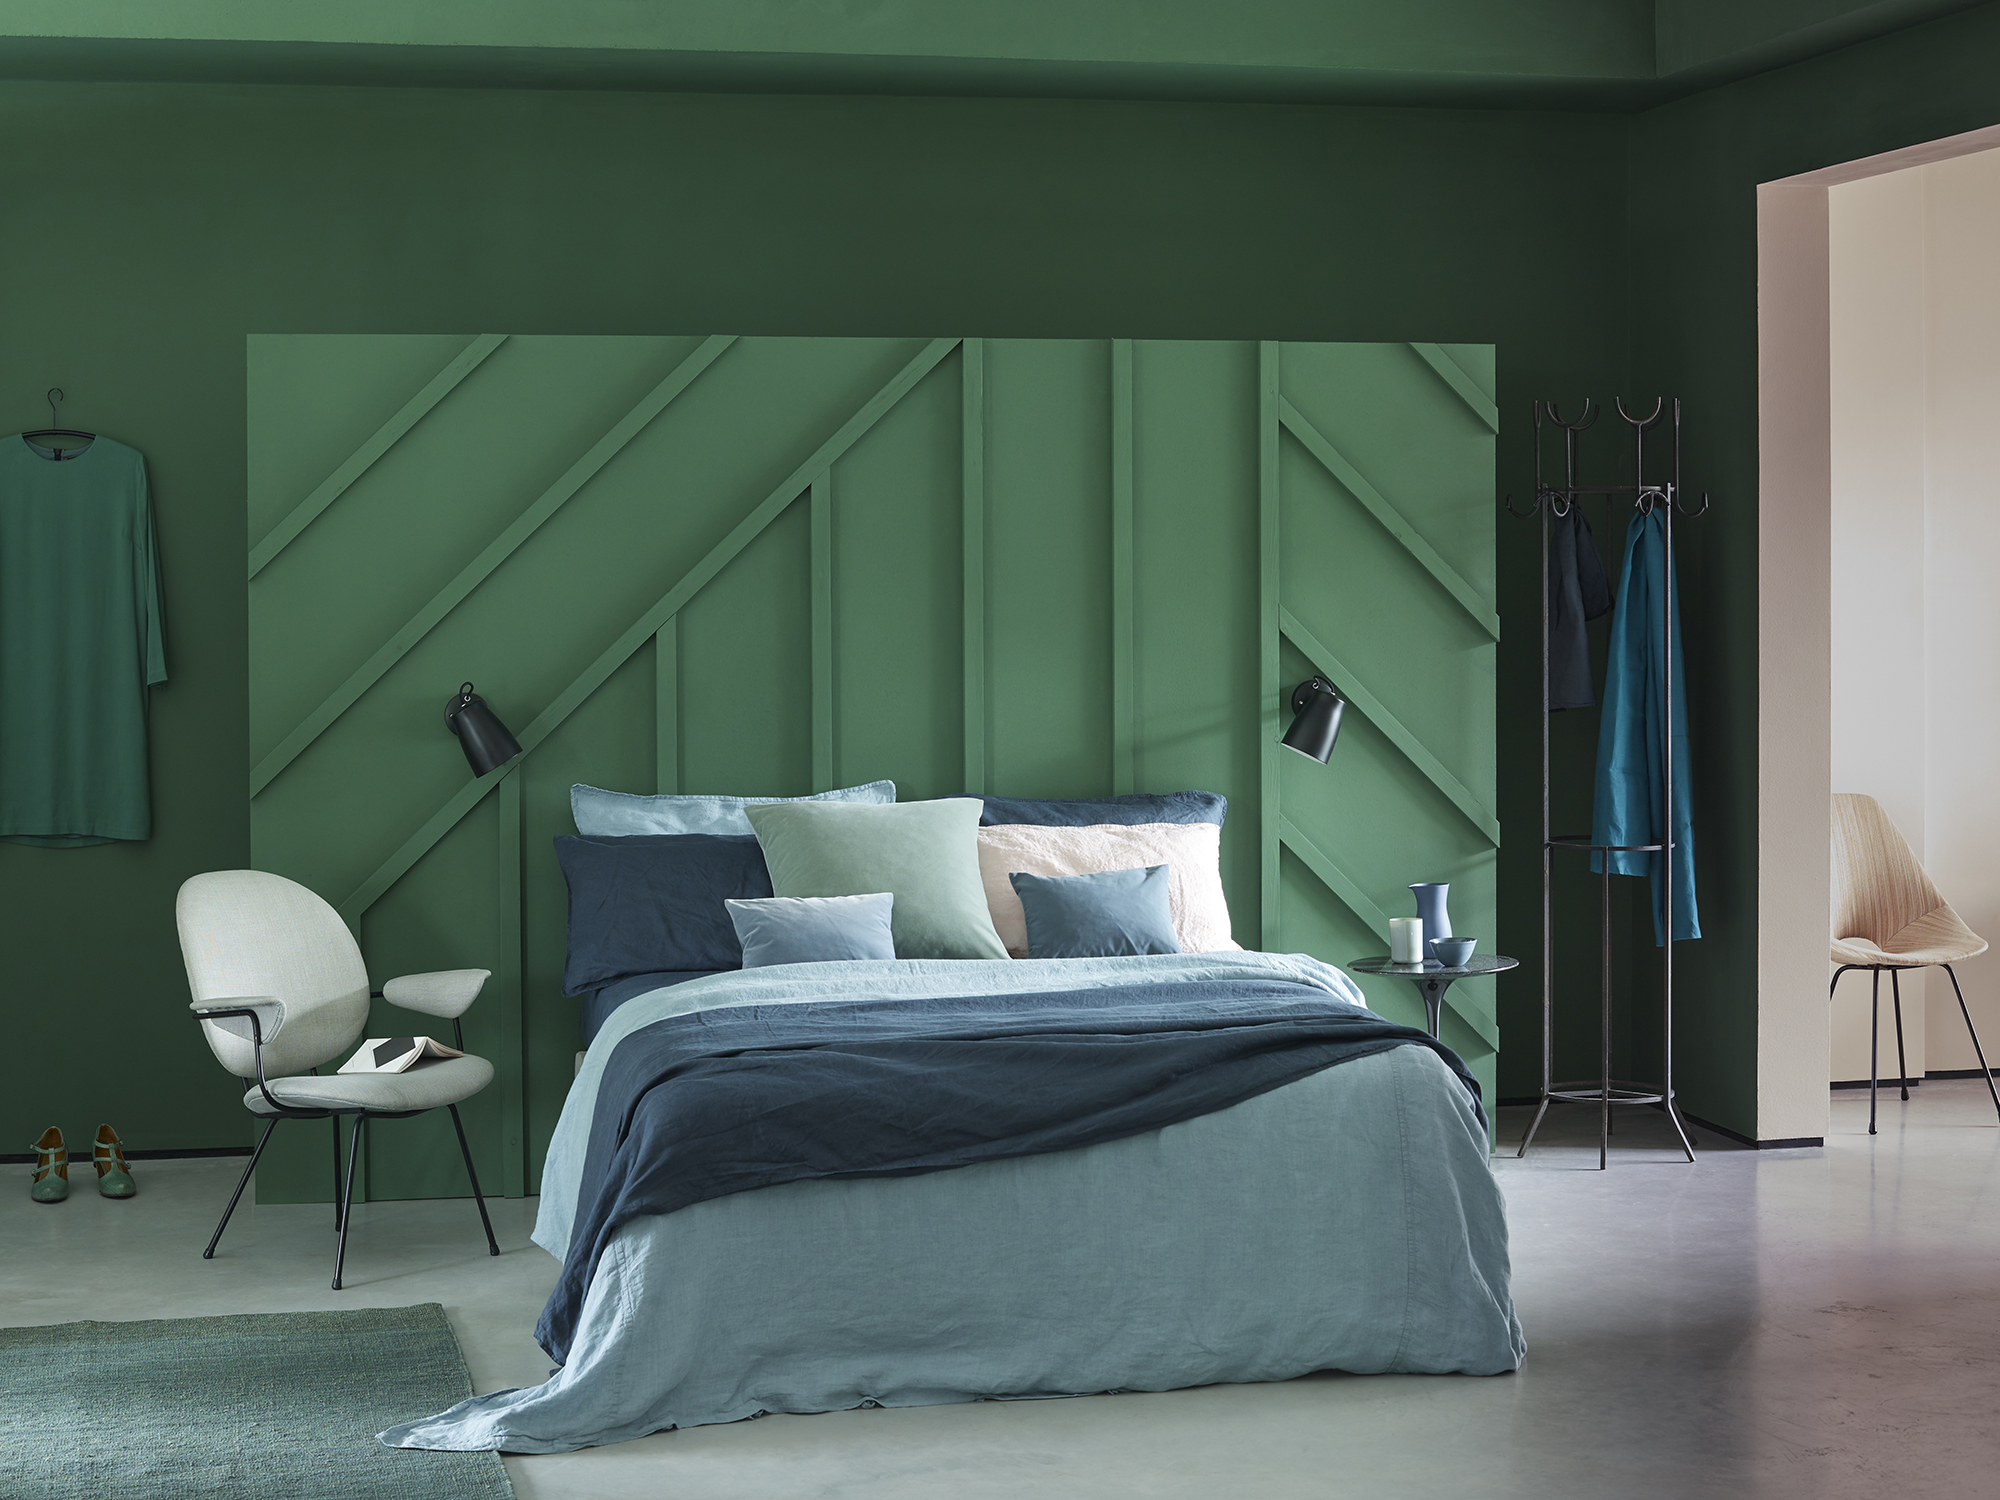 Hobby Wood is a deep forest green that creates a restful bedroom space